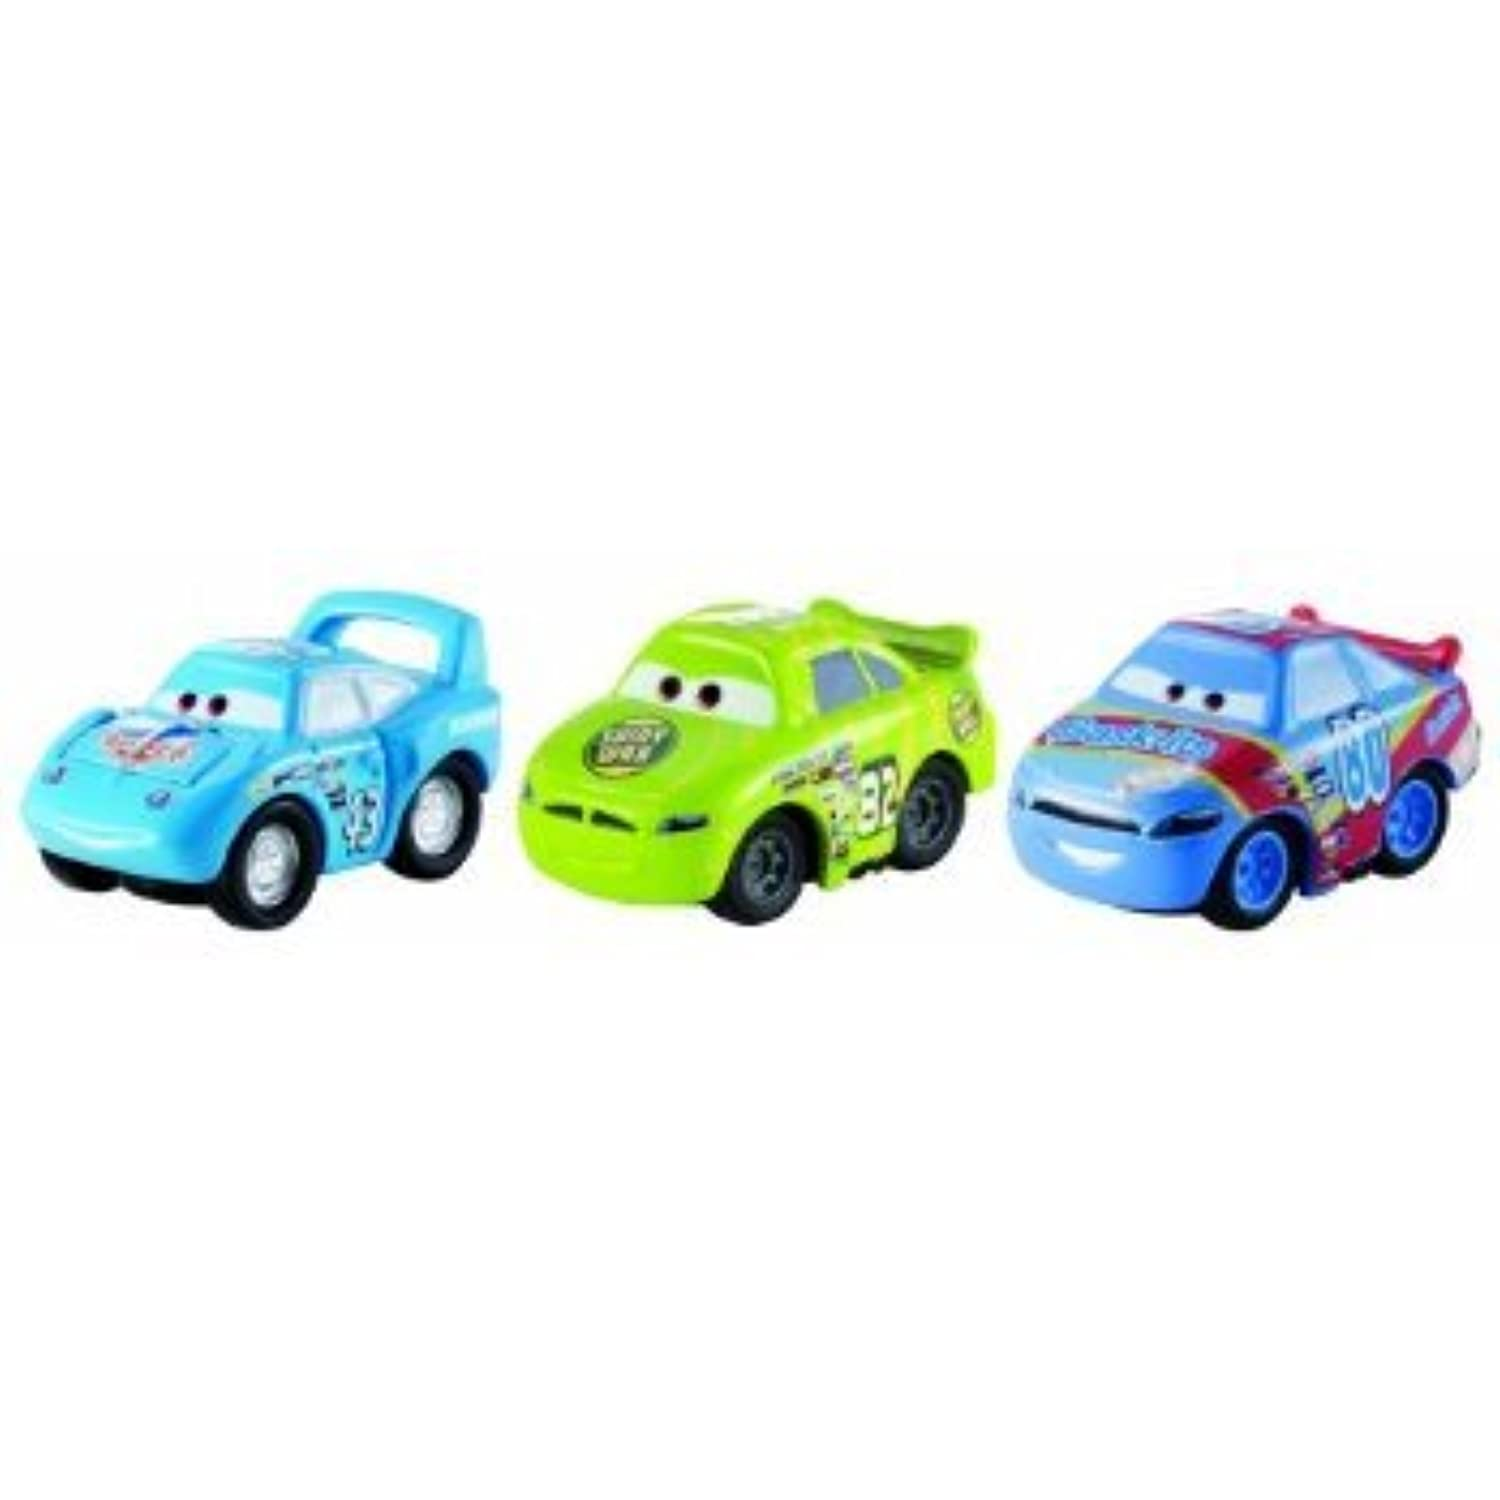 Disney/Pixar Cars, Micro Drifters Vehicles, Shiny Wax No. 82, Gask-Its No. 80, and The King, 3-Pack. おもちゃ [並行輸入品]